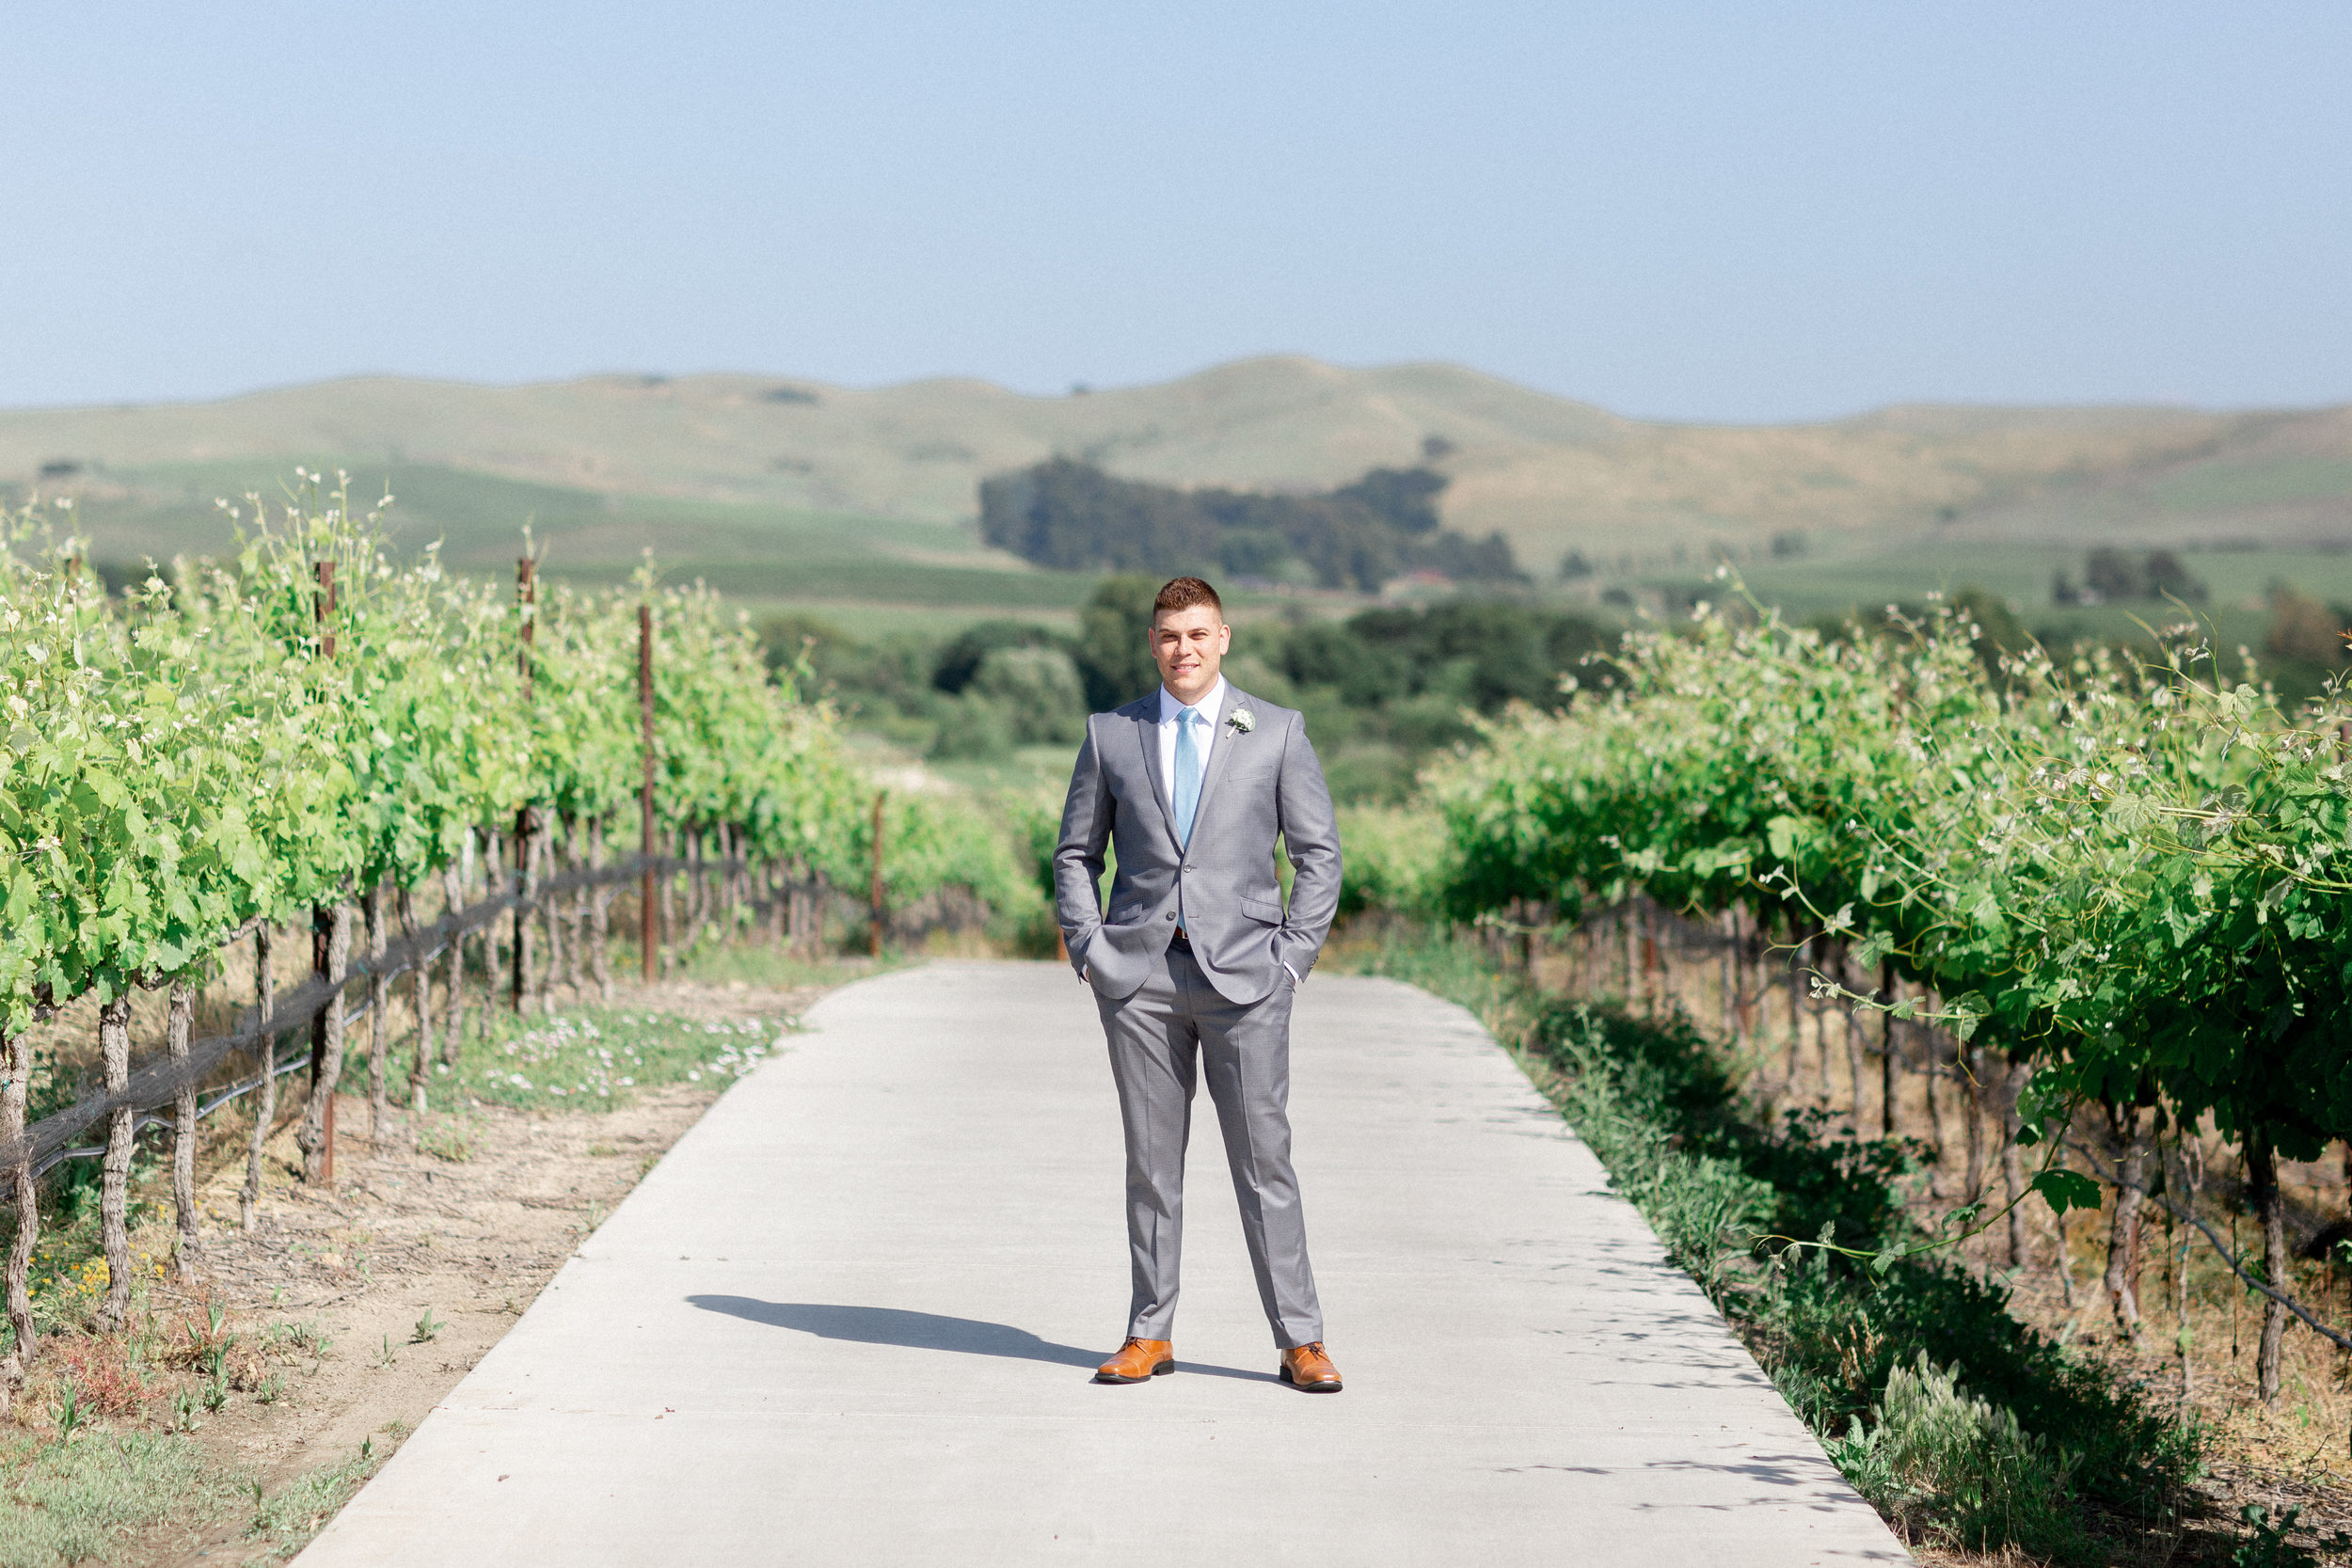 napa-destination-wedding-photographer-captures-groom-portraits-in-vineyards.jpg